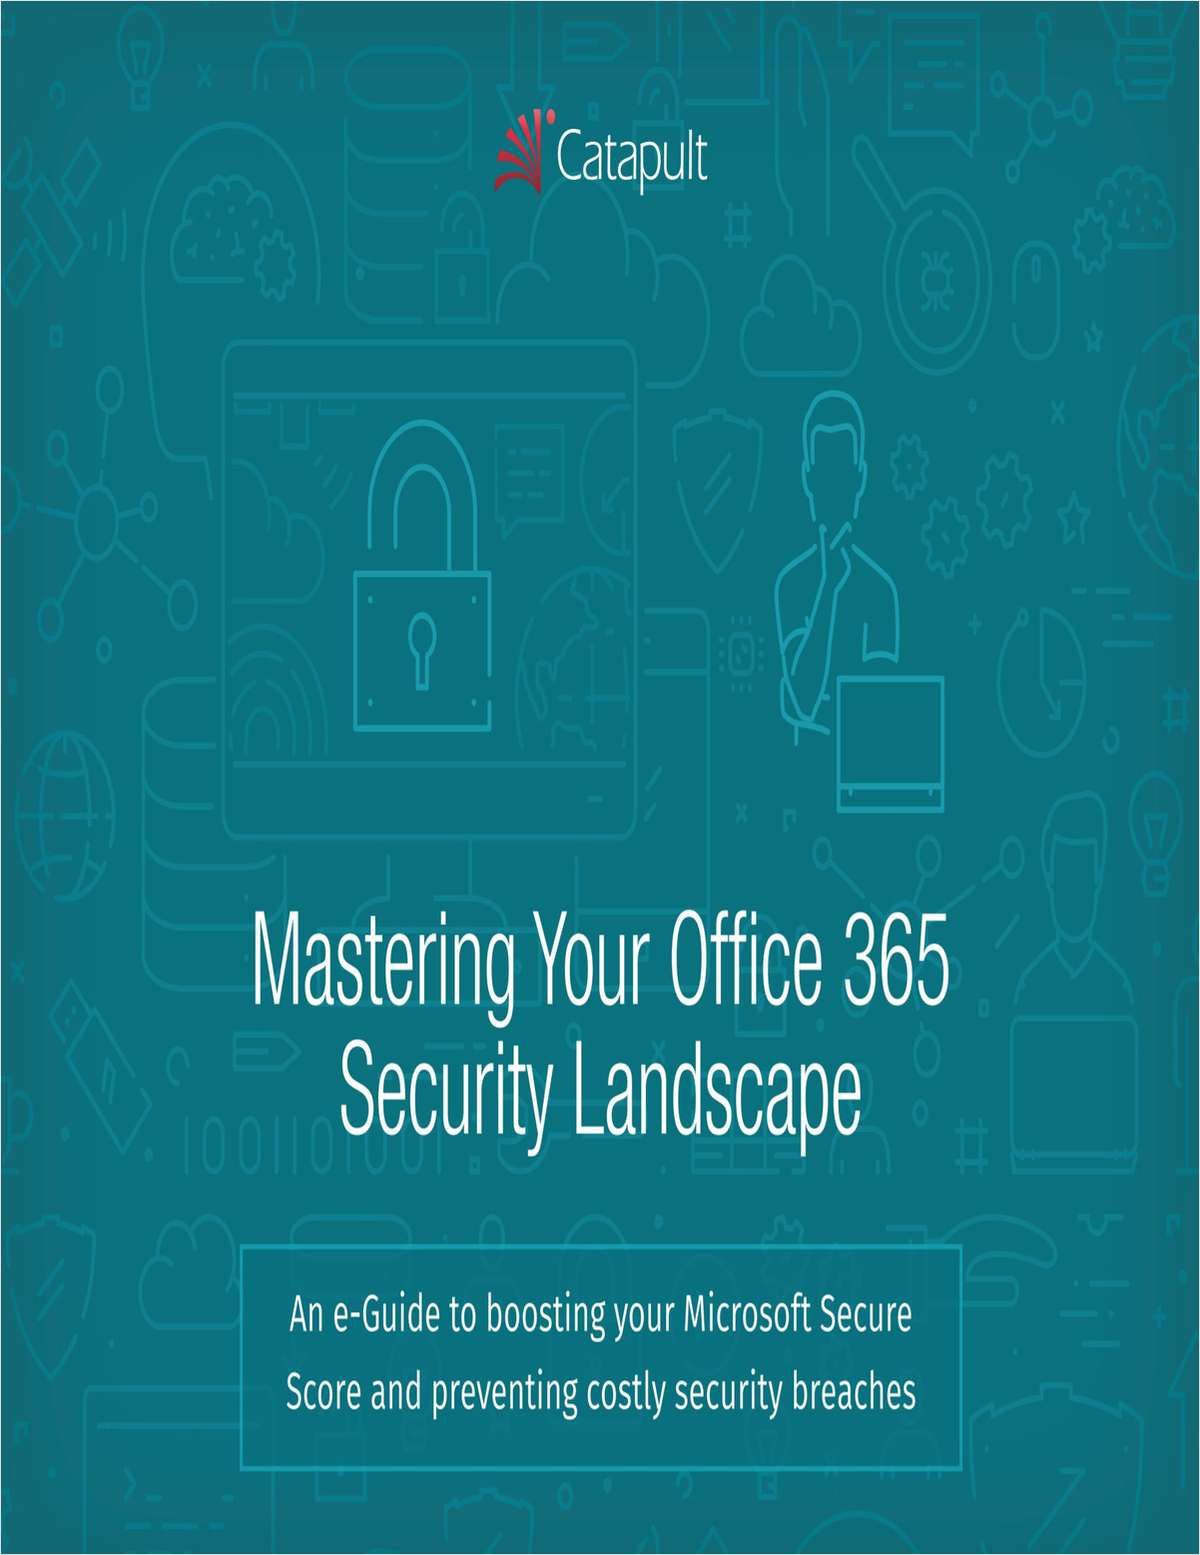 Mastering Your Office 365 Security Landscape